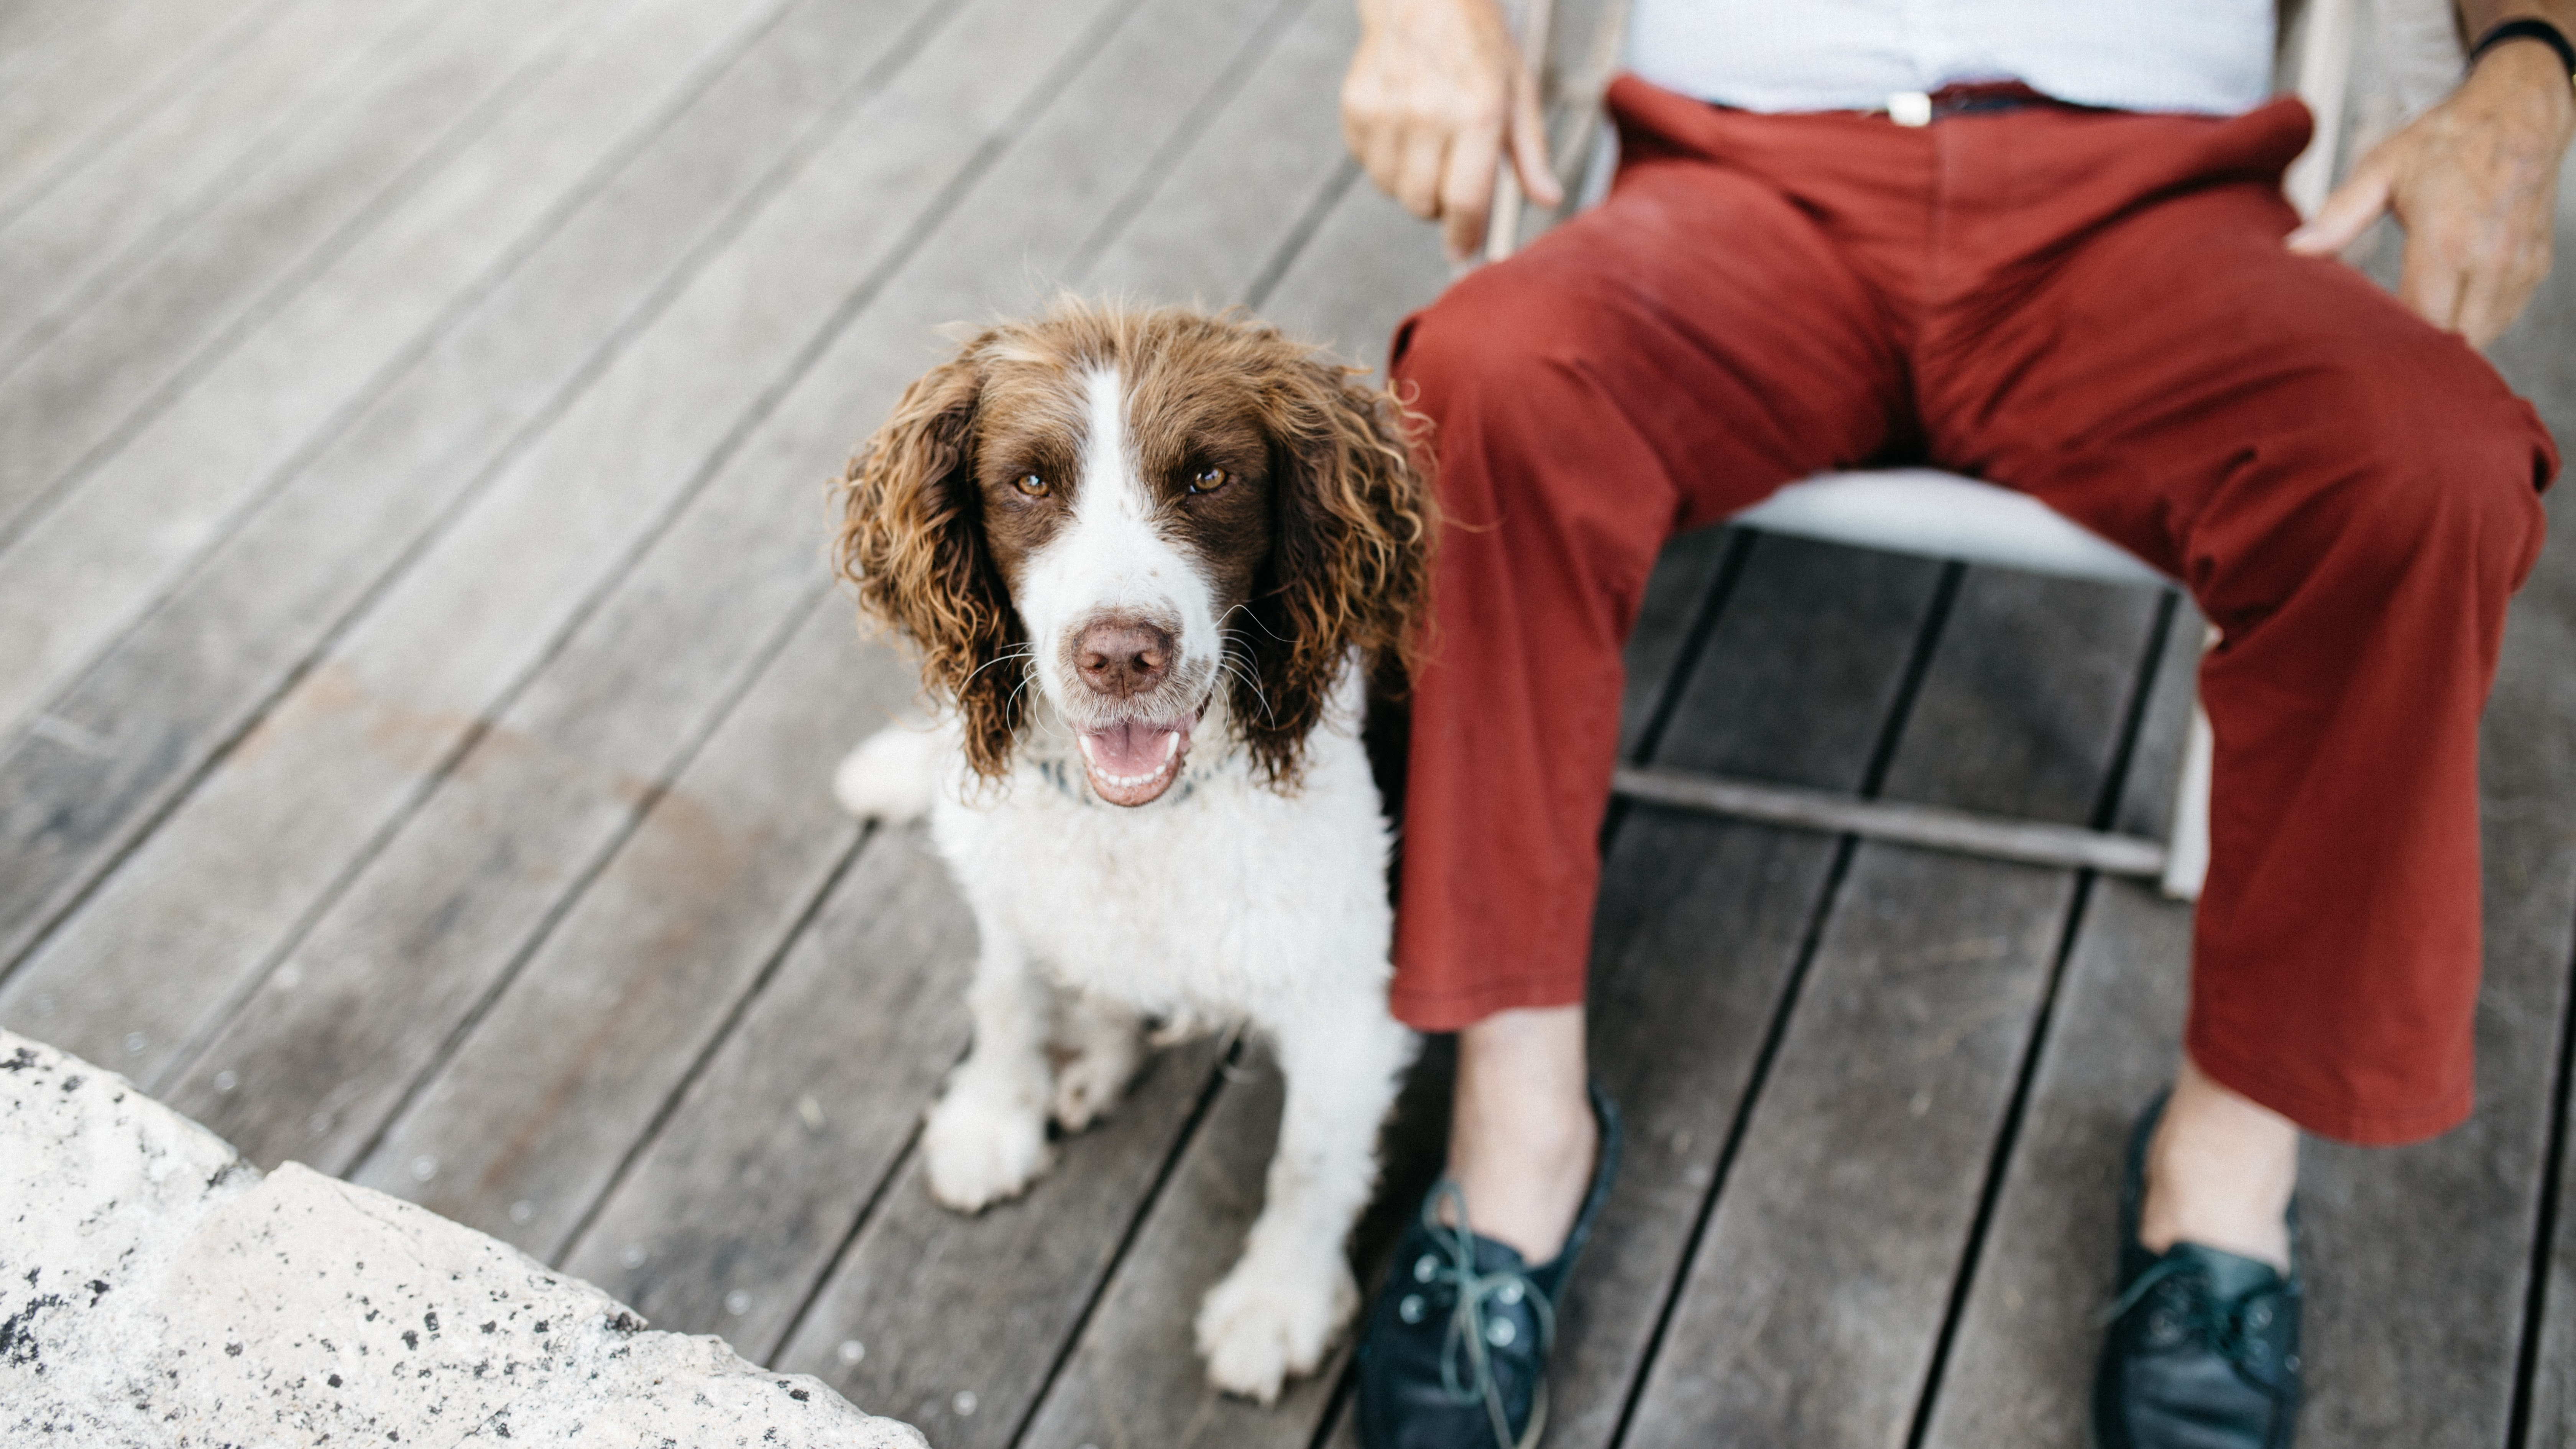 medium-coated white and brown dog beside person wearing red pants